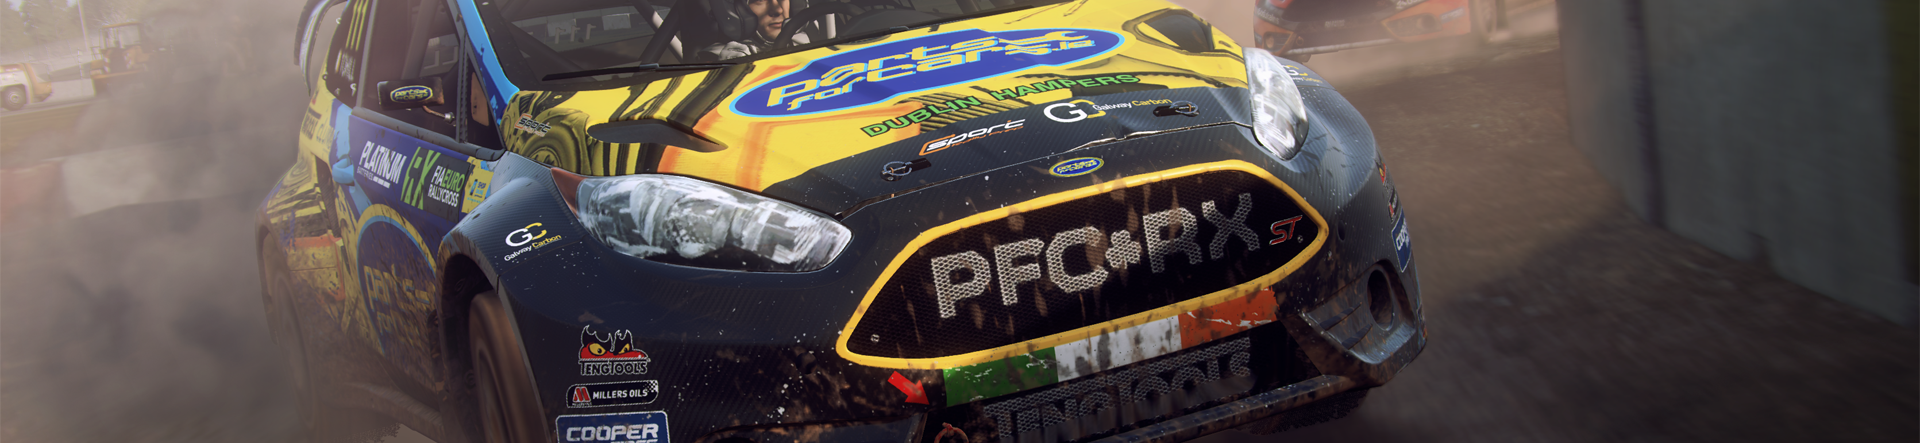 DiRT Rally 2 0 will launch with 8 rallycross tracks with more to